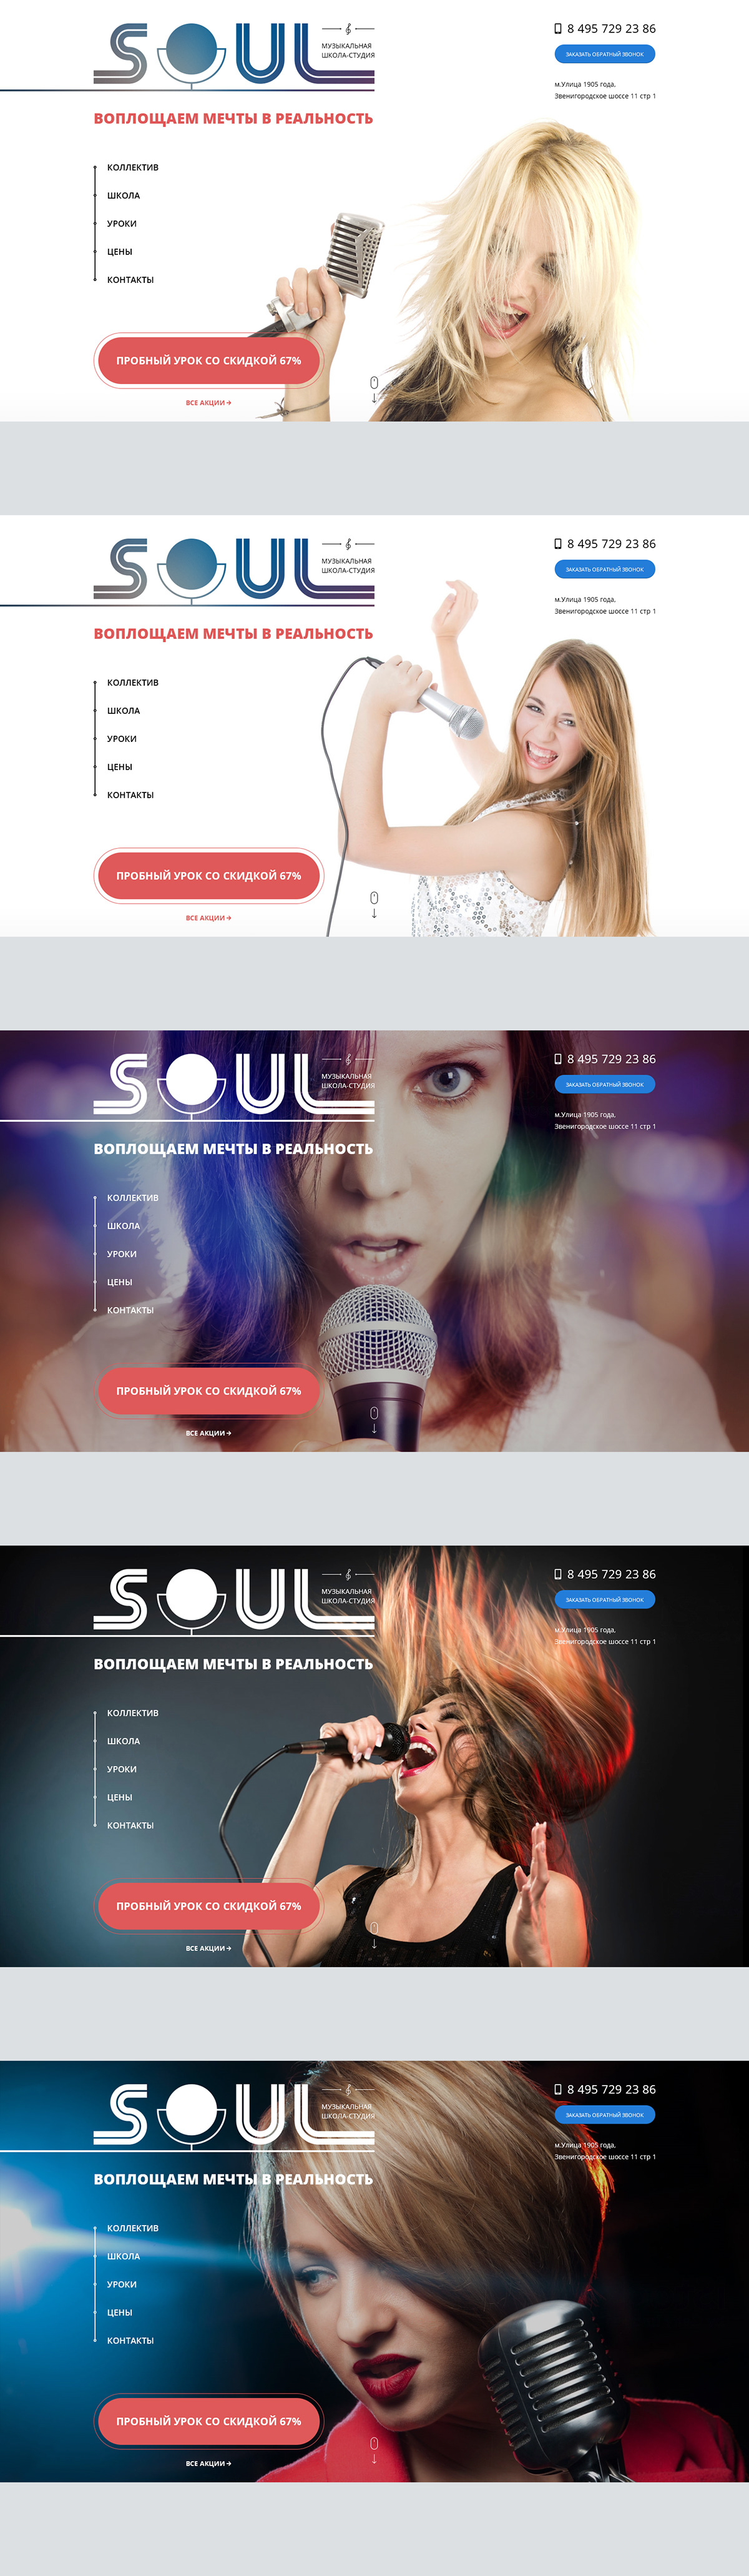 soul-1-3-main-first-screens